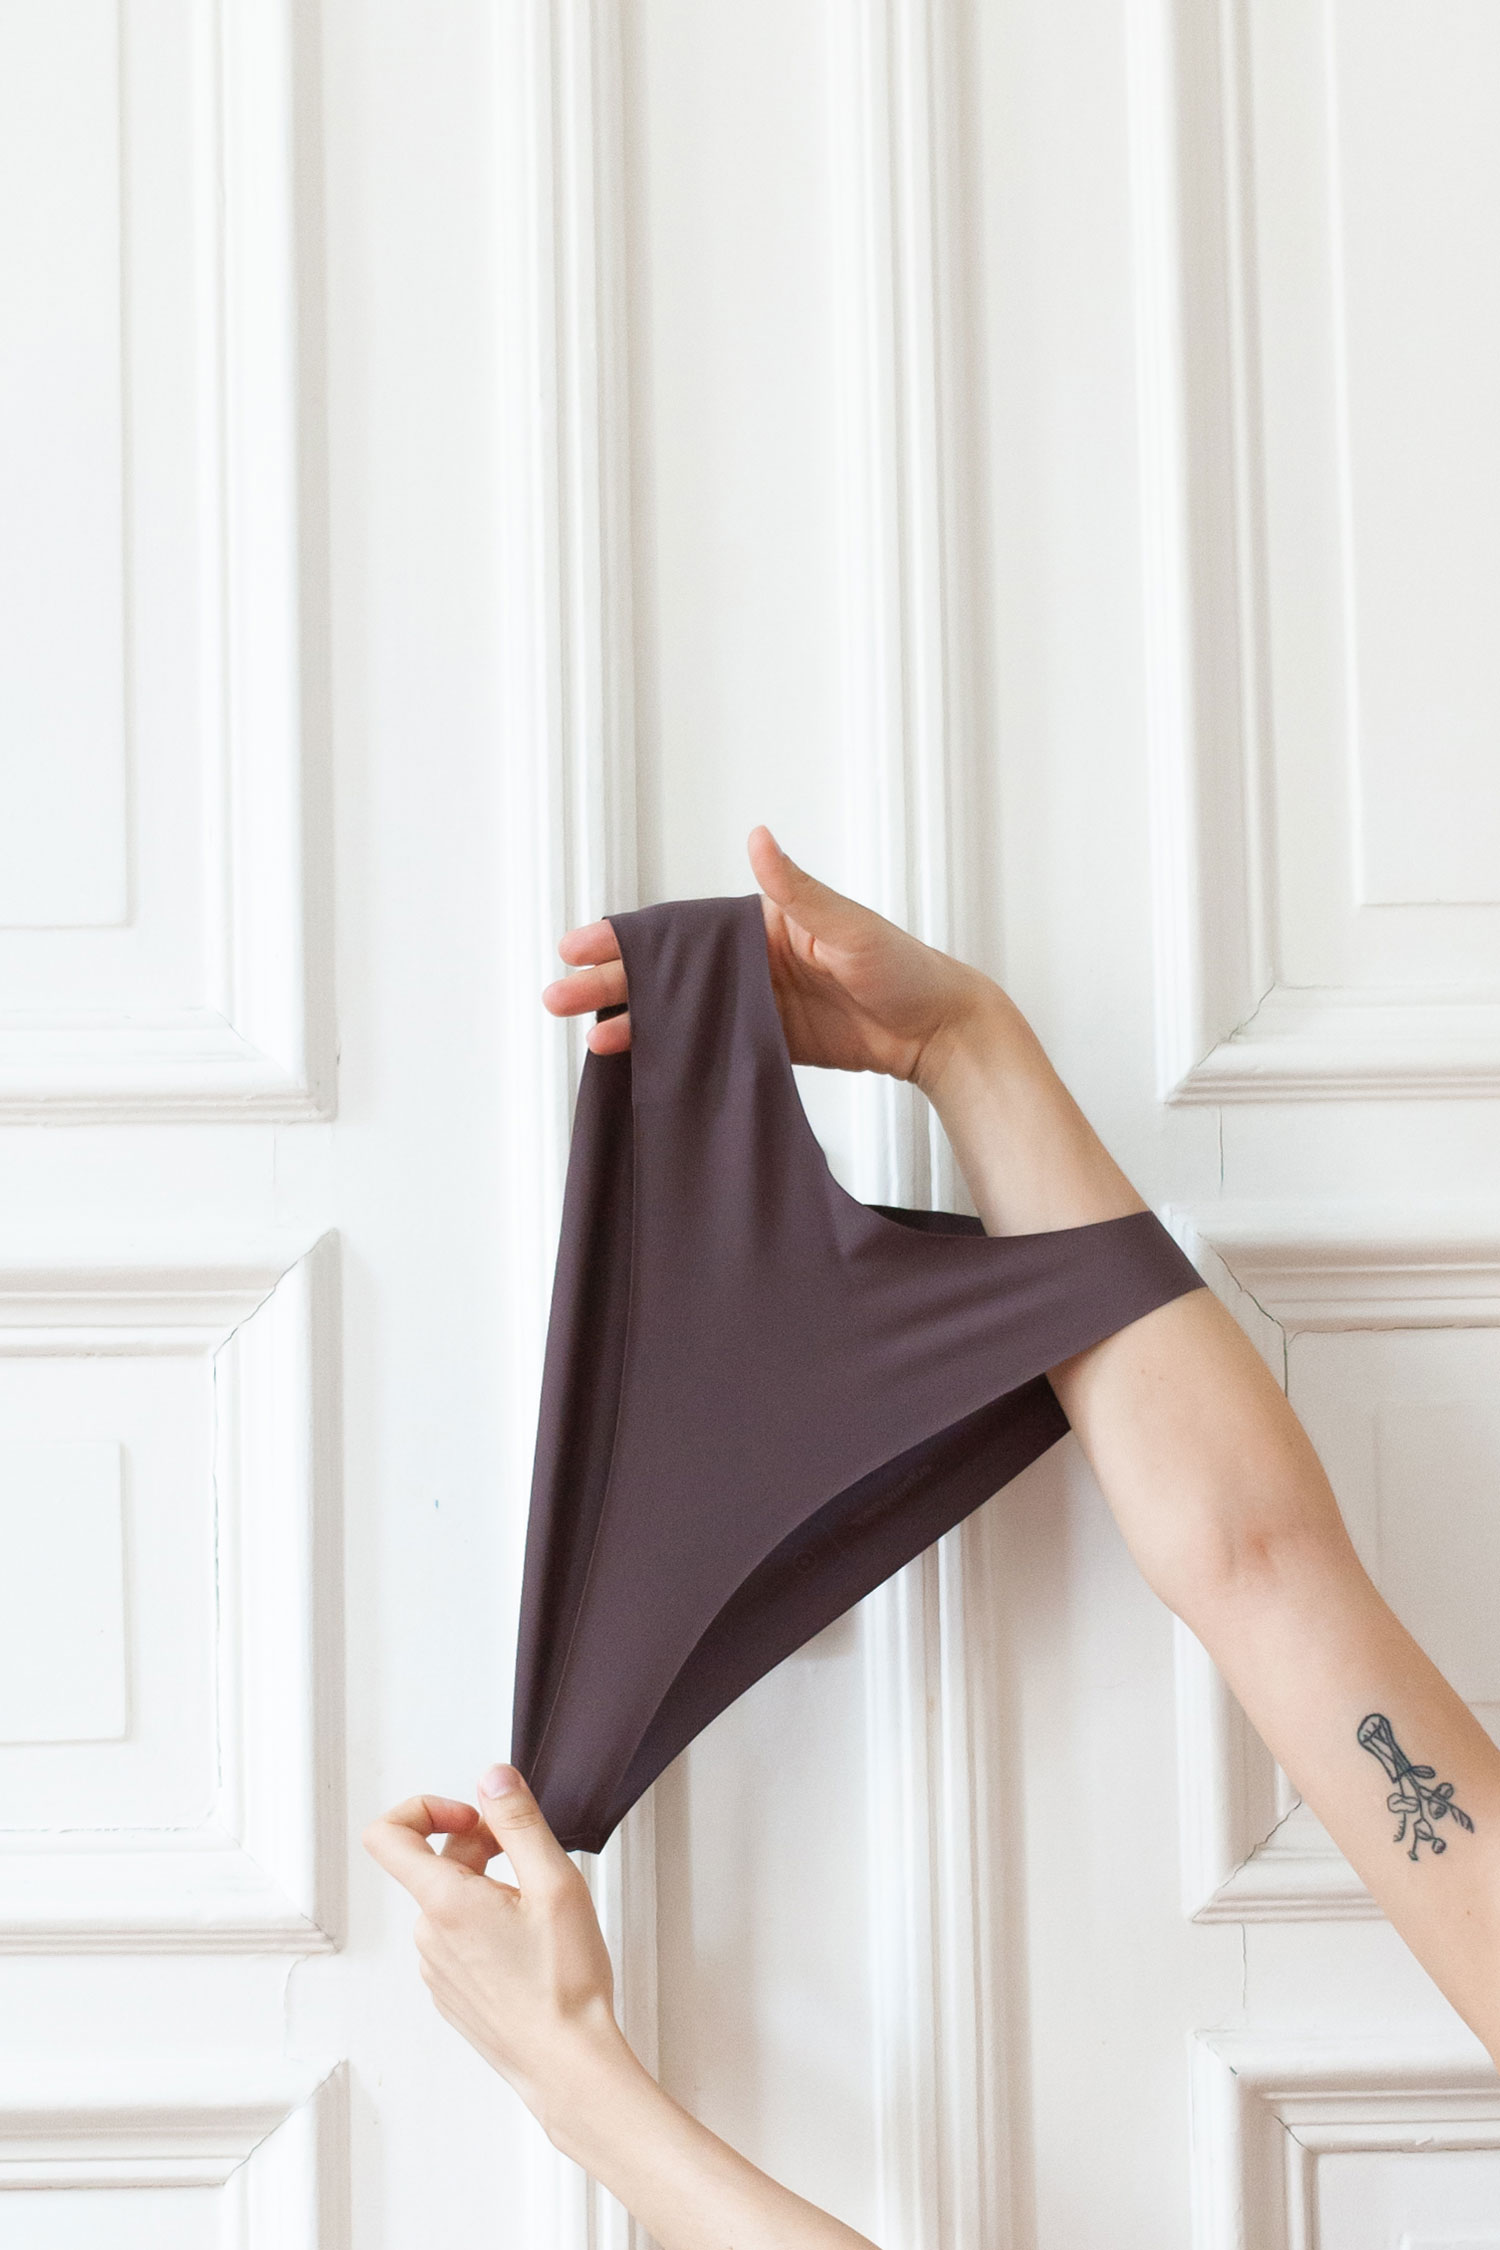 Fair Fashion Label Guide - Eco Fair Underwear - Ethical Lingerie